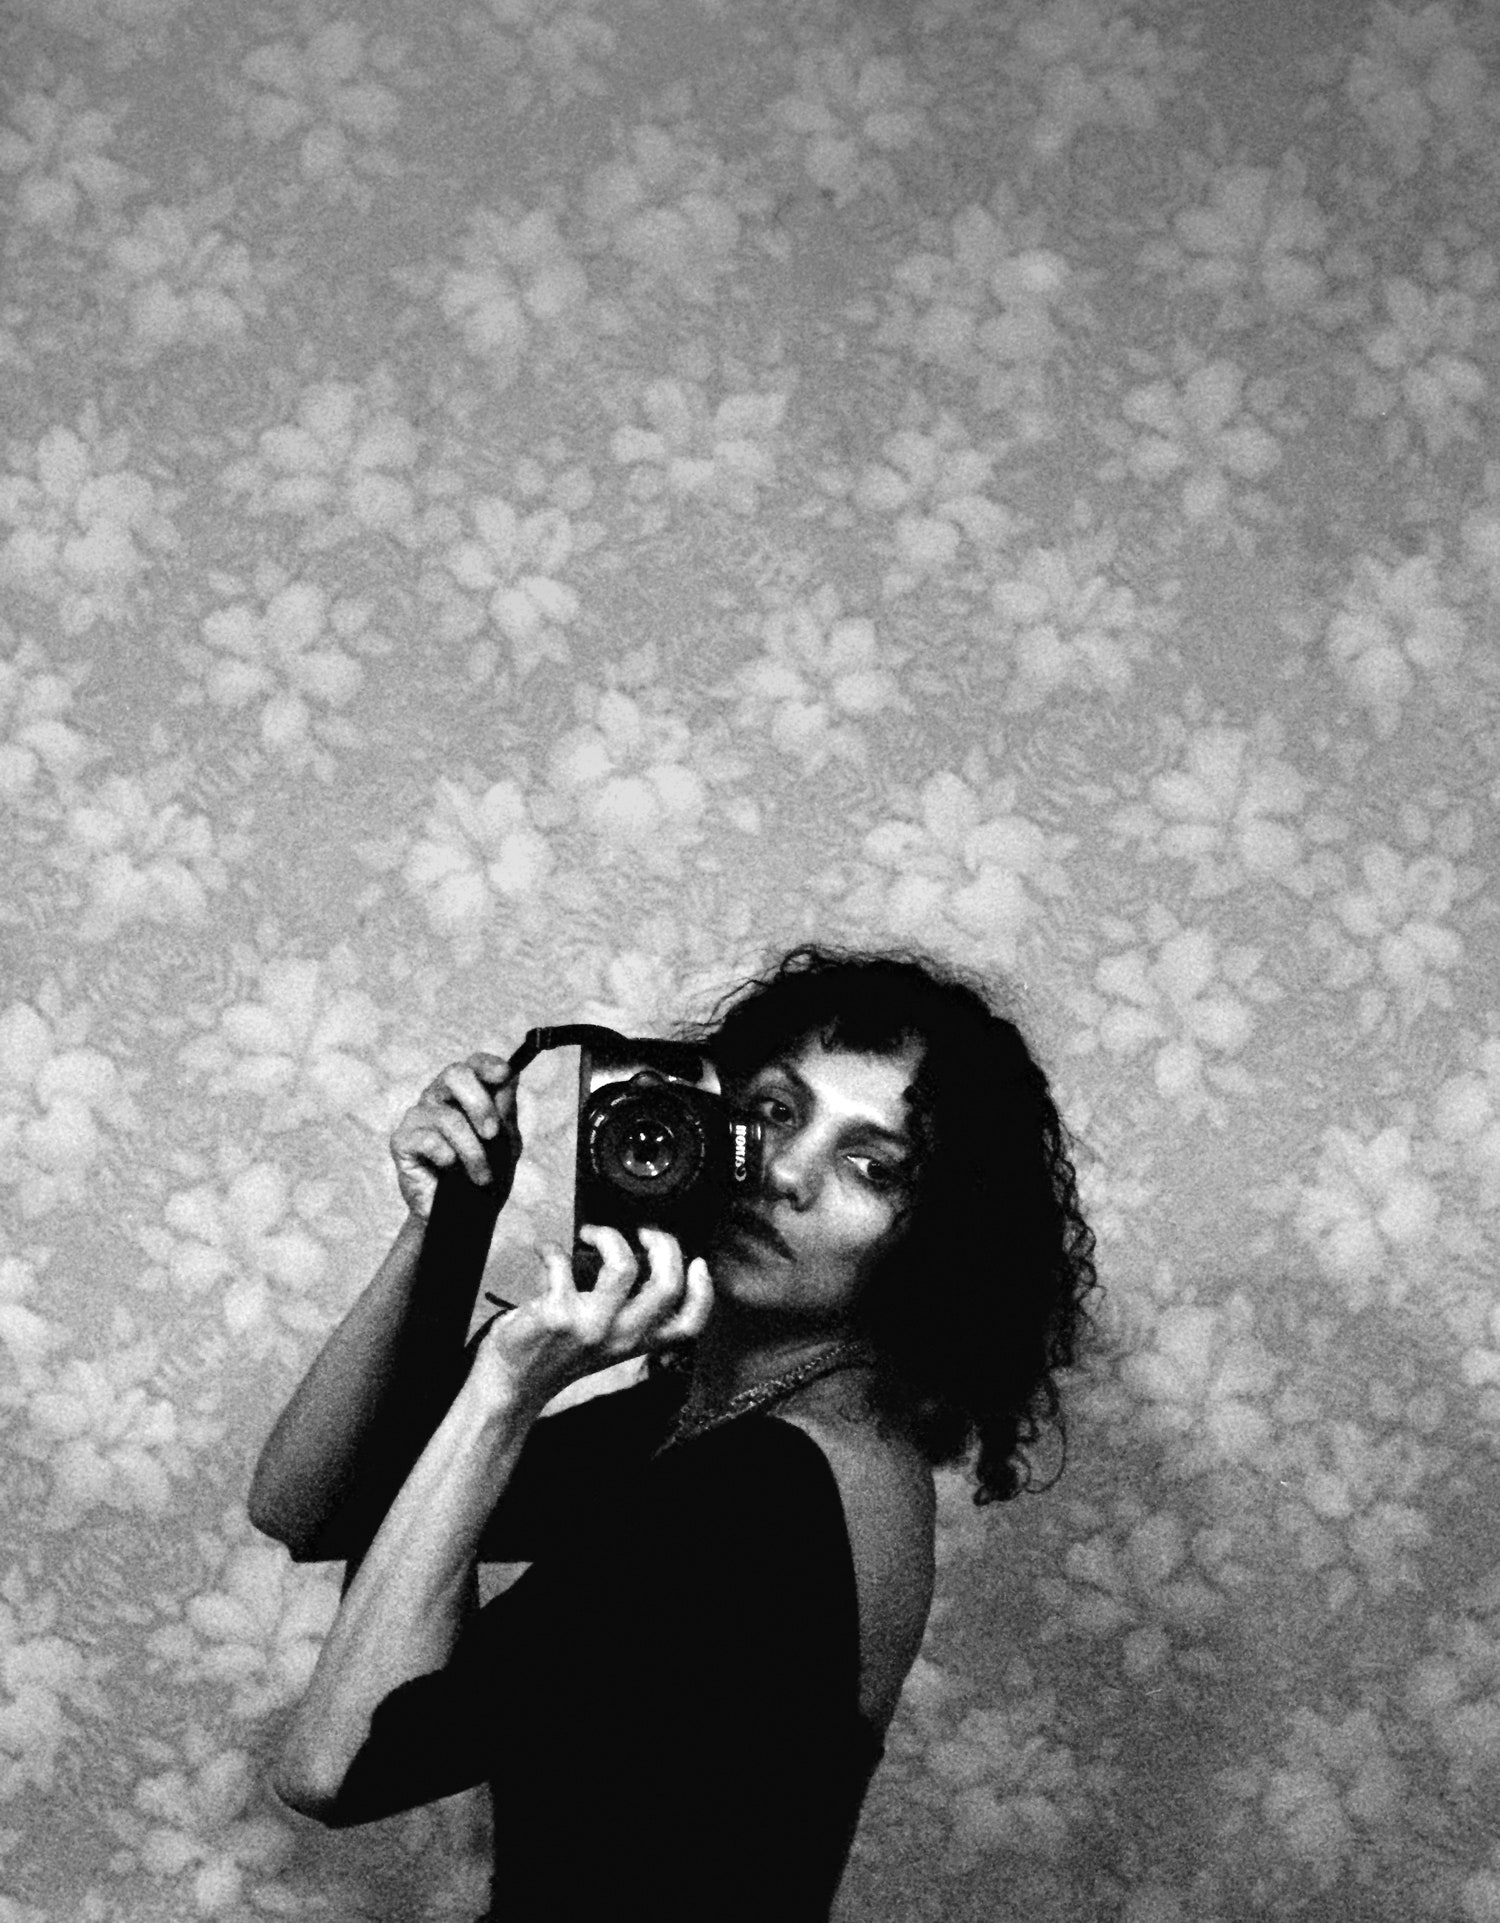 A black-and-white self portrait of a woman standing in front of patterned floral wallpaper. She stands to the side and turns her head forward, holding a camera up. She is visible from the waist up and wears a black leotard.